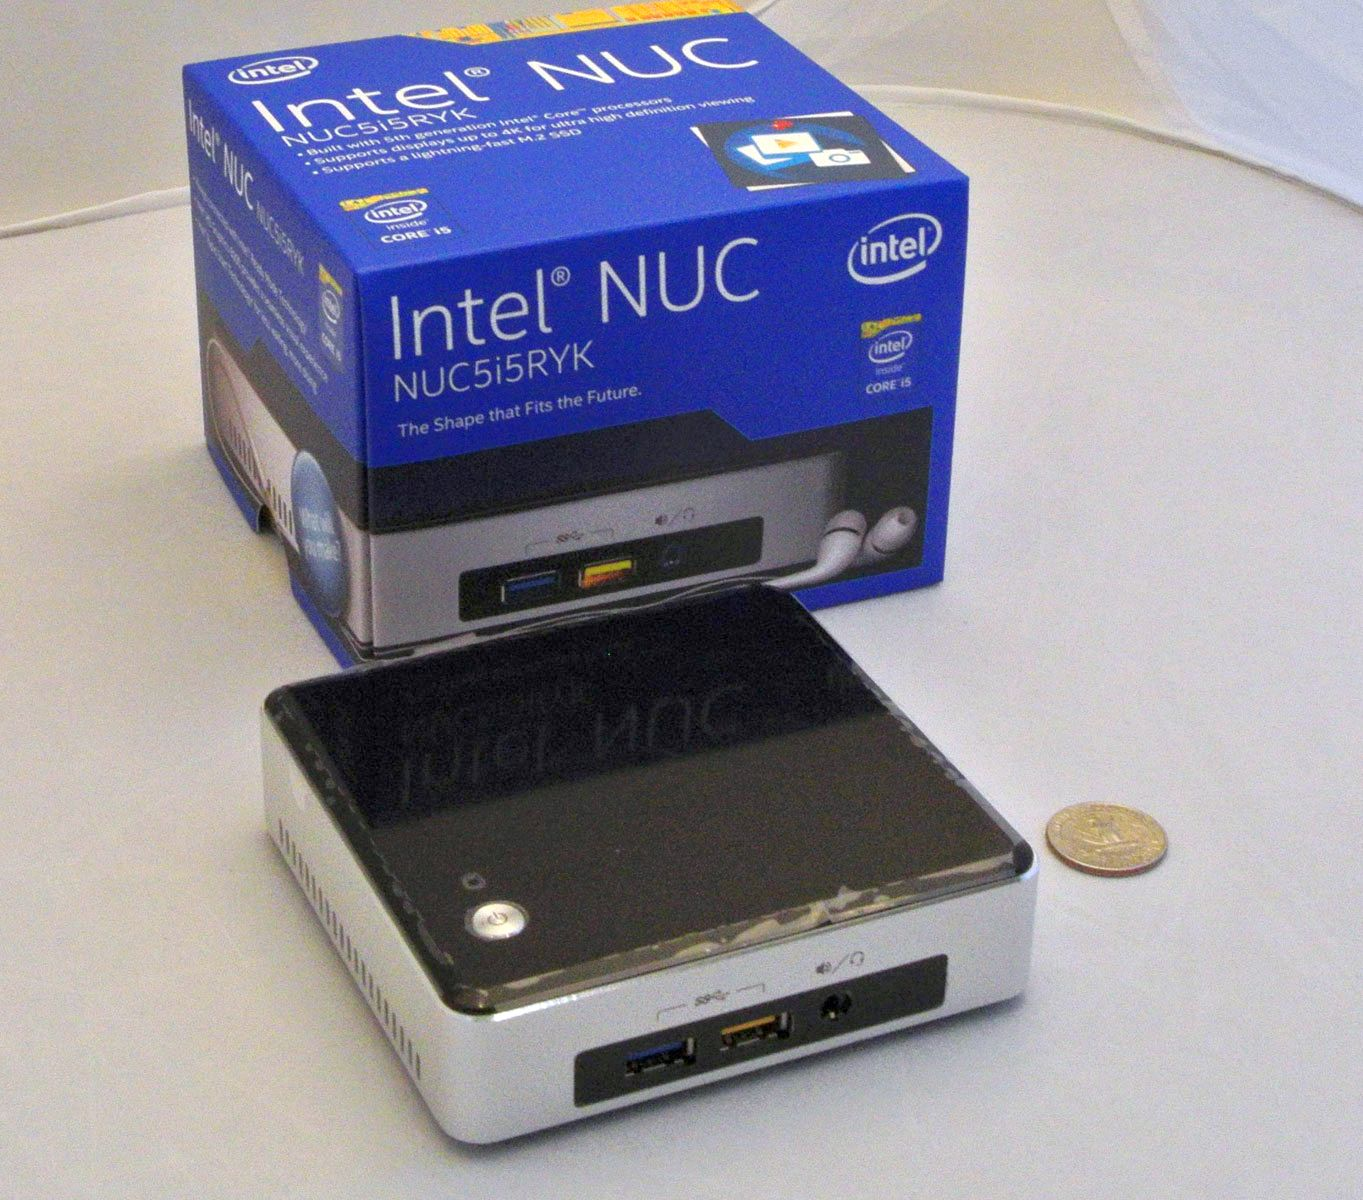 intel nuc how to turn wireless off